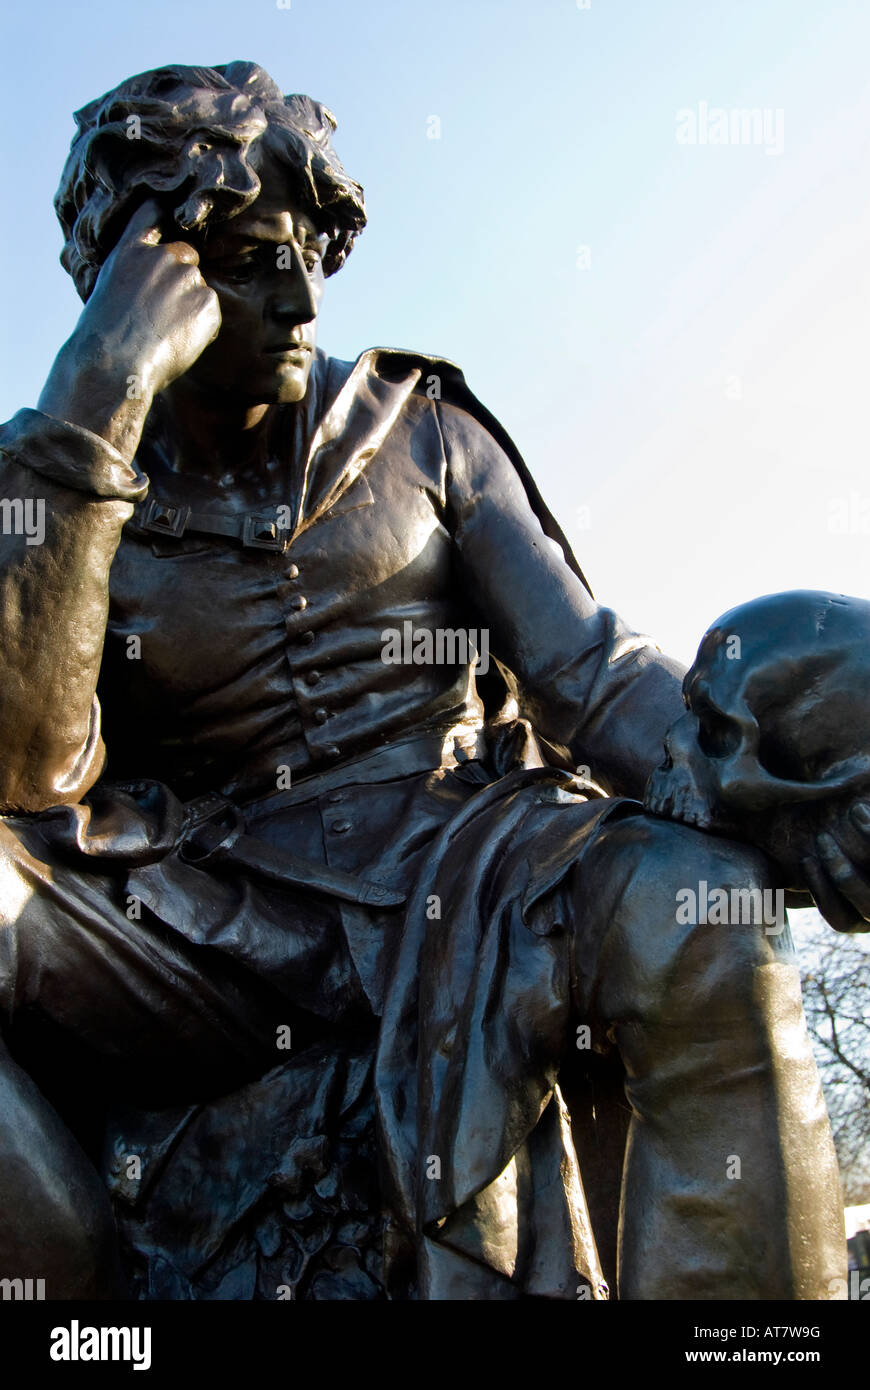 A statue of Hamlet holding the skull of Yorick, Stratford upon Avon, Warwickshire, England, UK. - Stock Image